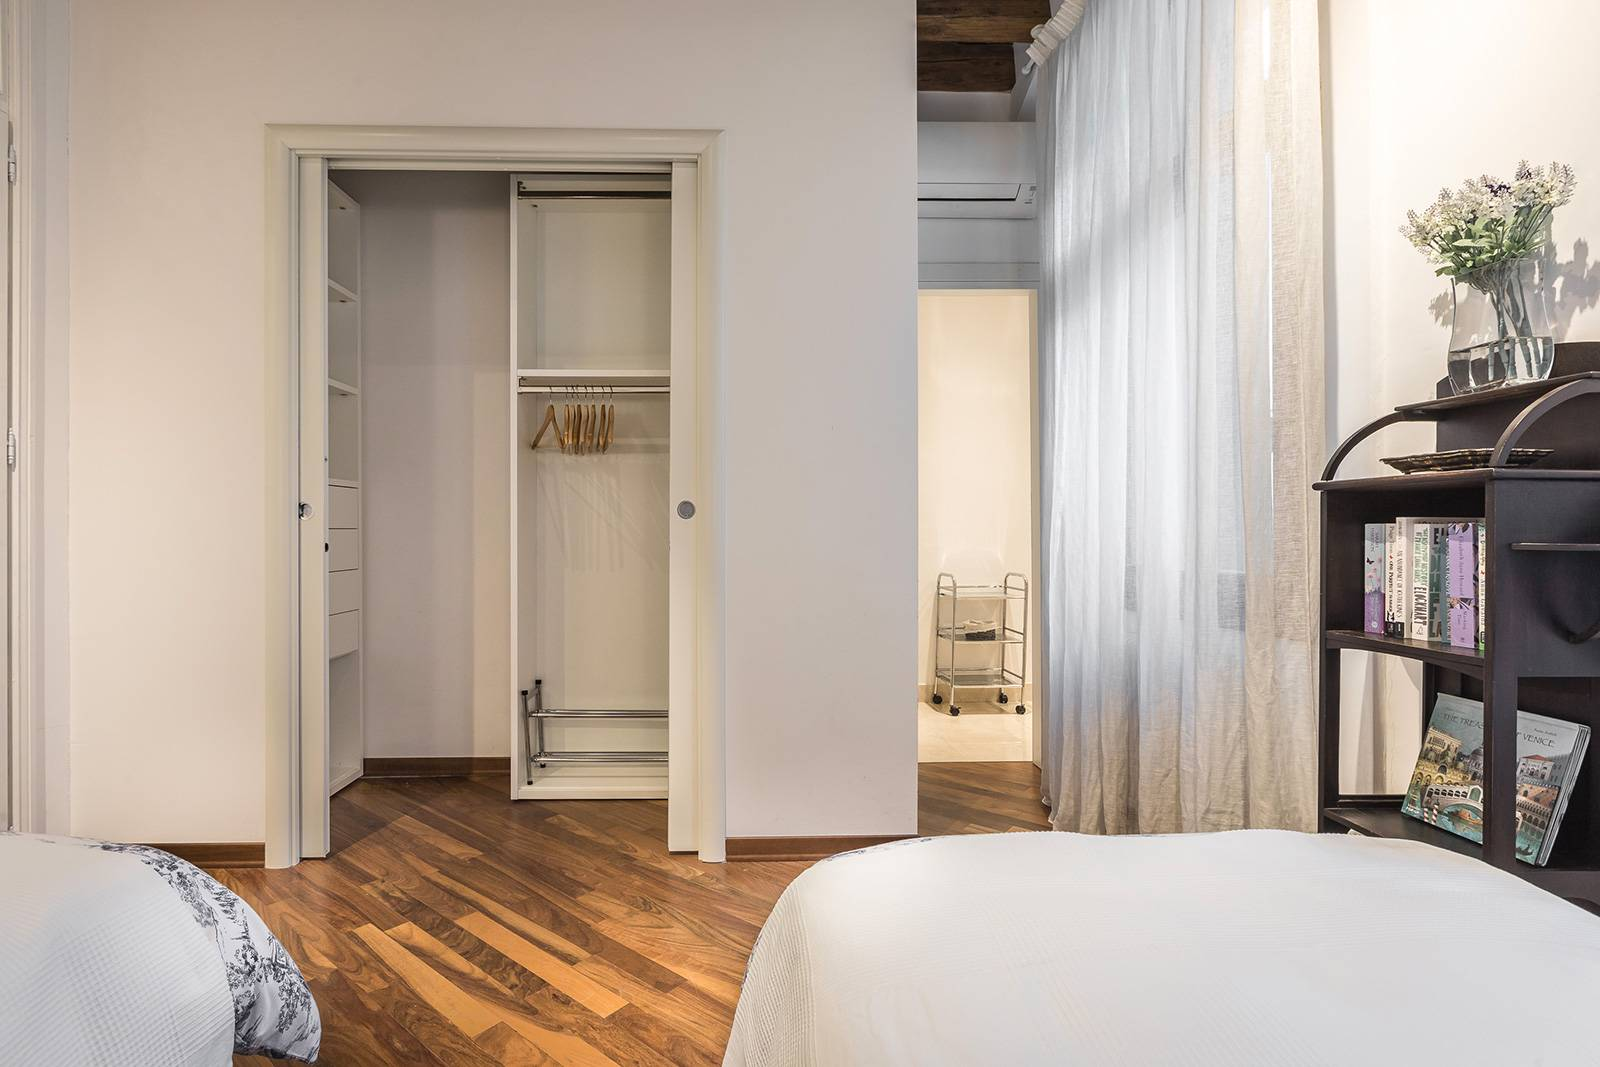 there is a walk-in wardrobe with sliding doors